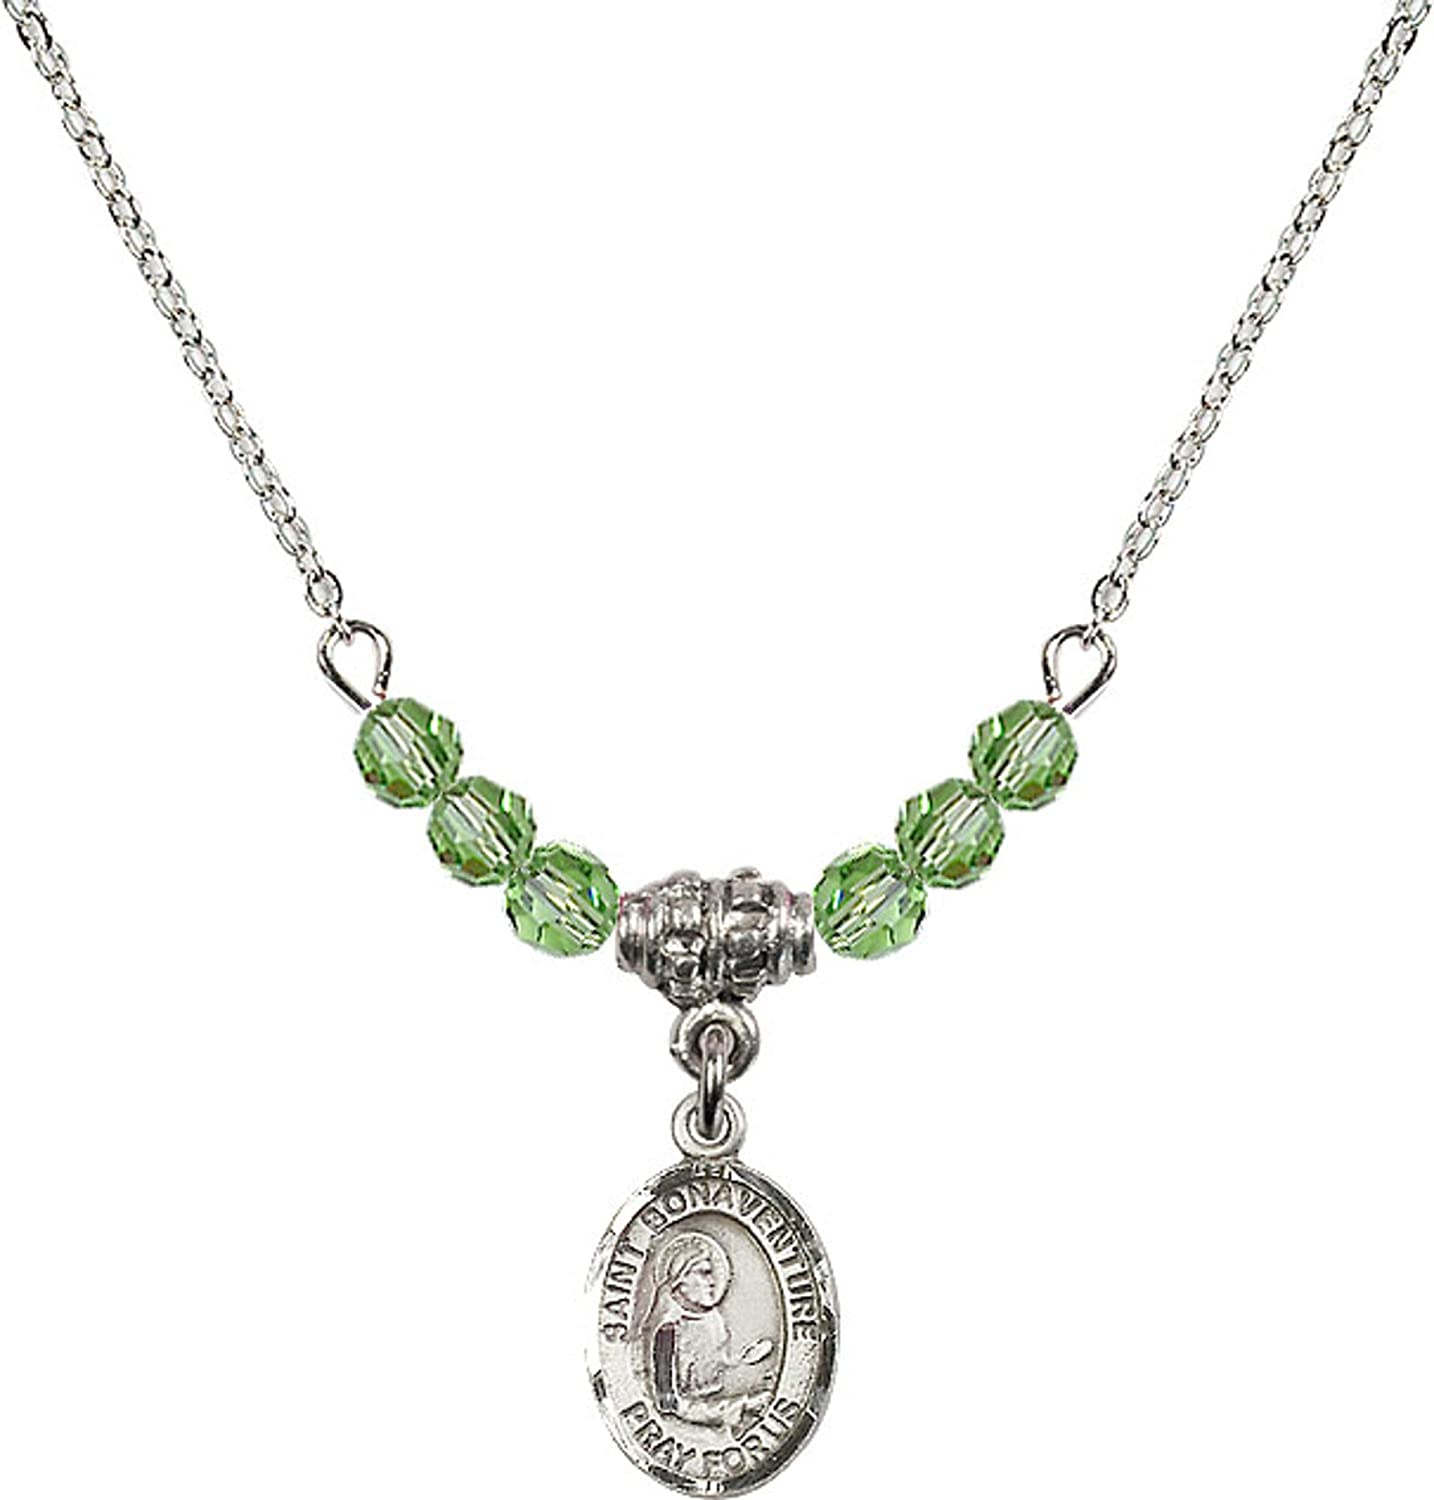 18 Inch Rhodium Plated Necklace w// 4mm Green August Birth Month Stone Beads and Saint Bonaventure Charm